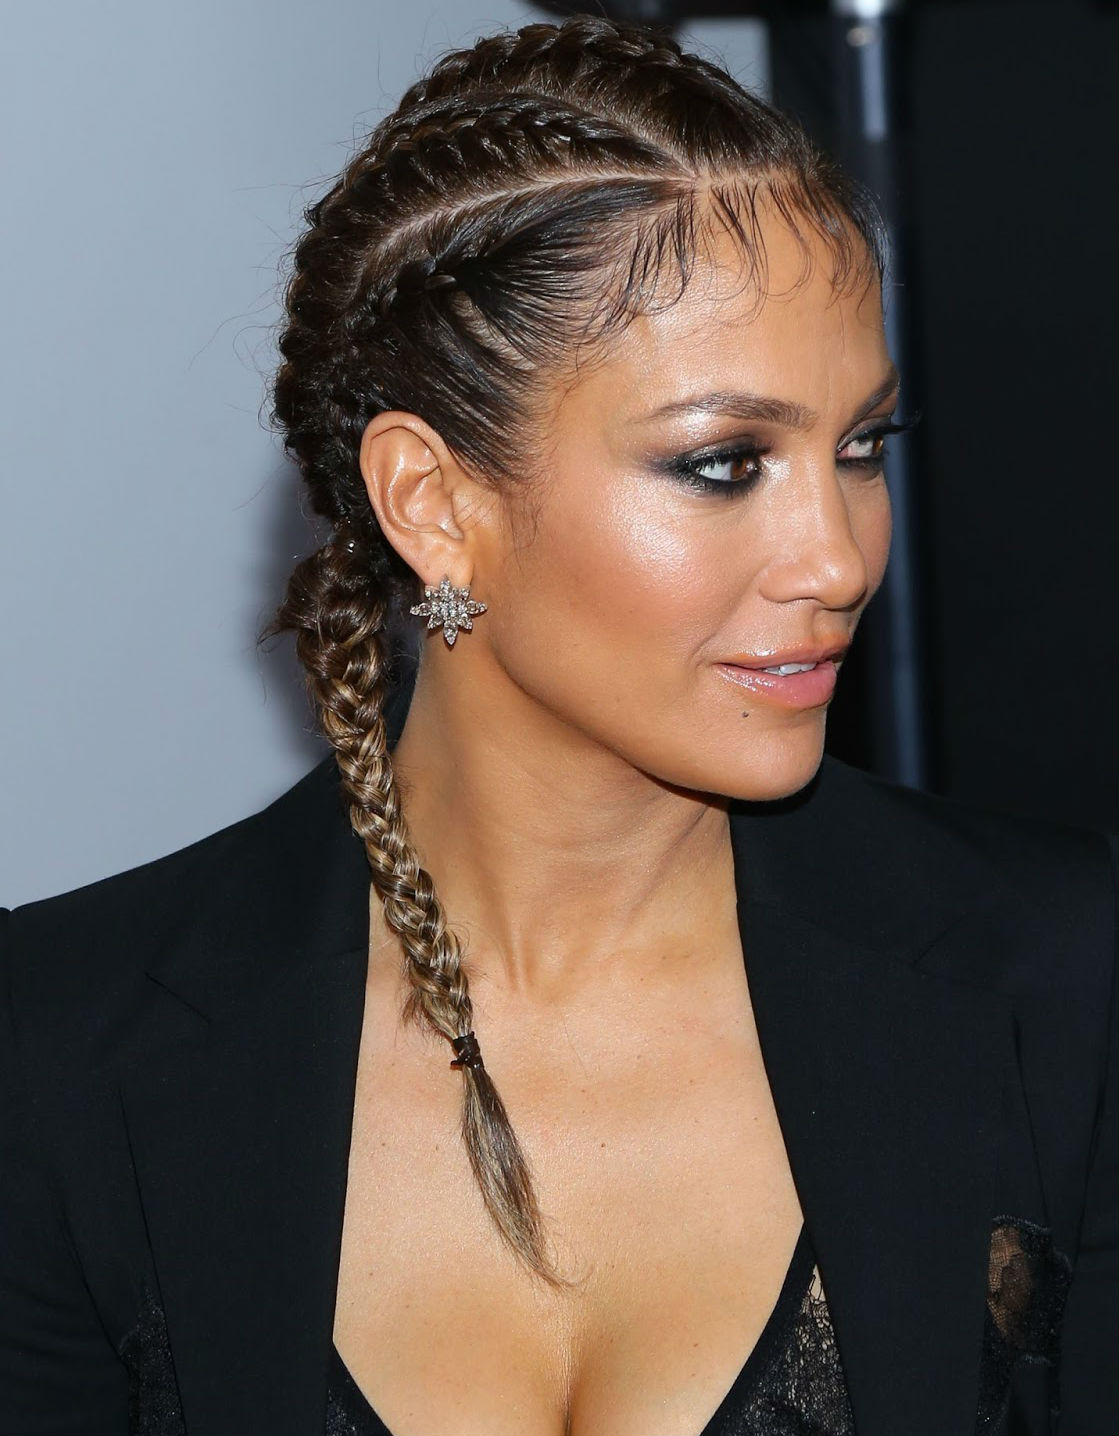 celebs_proving_braids_are_the_hottest_trend_of_2016_04